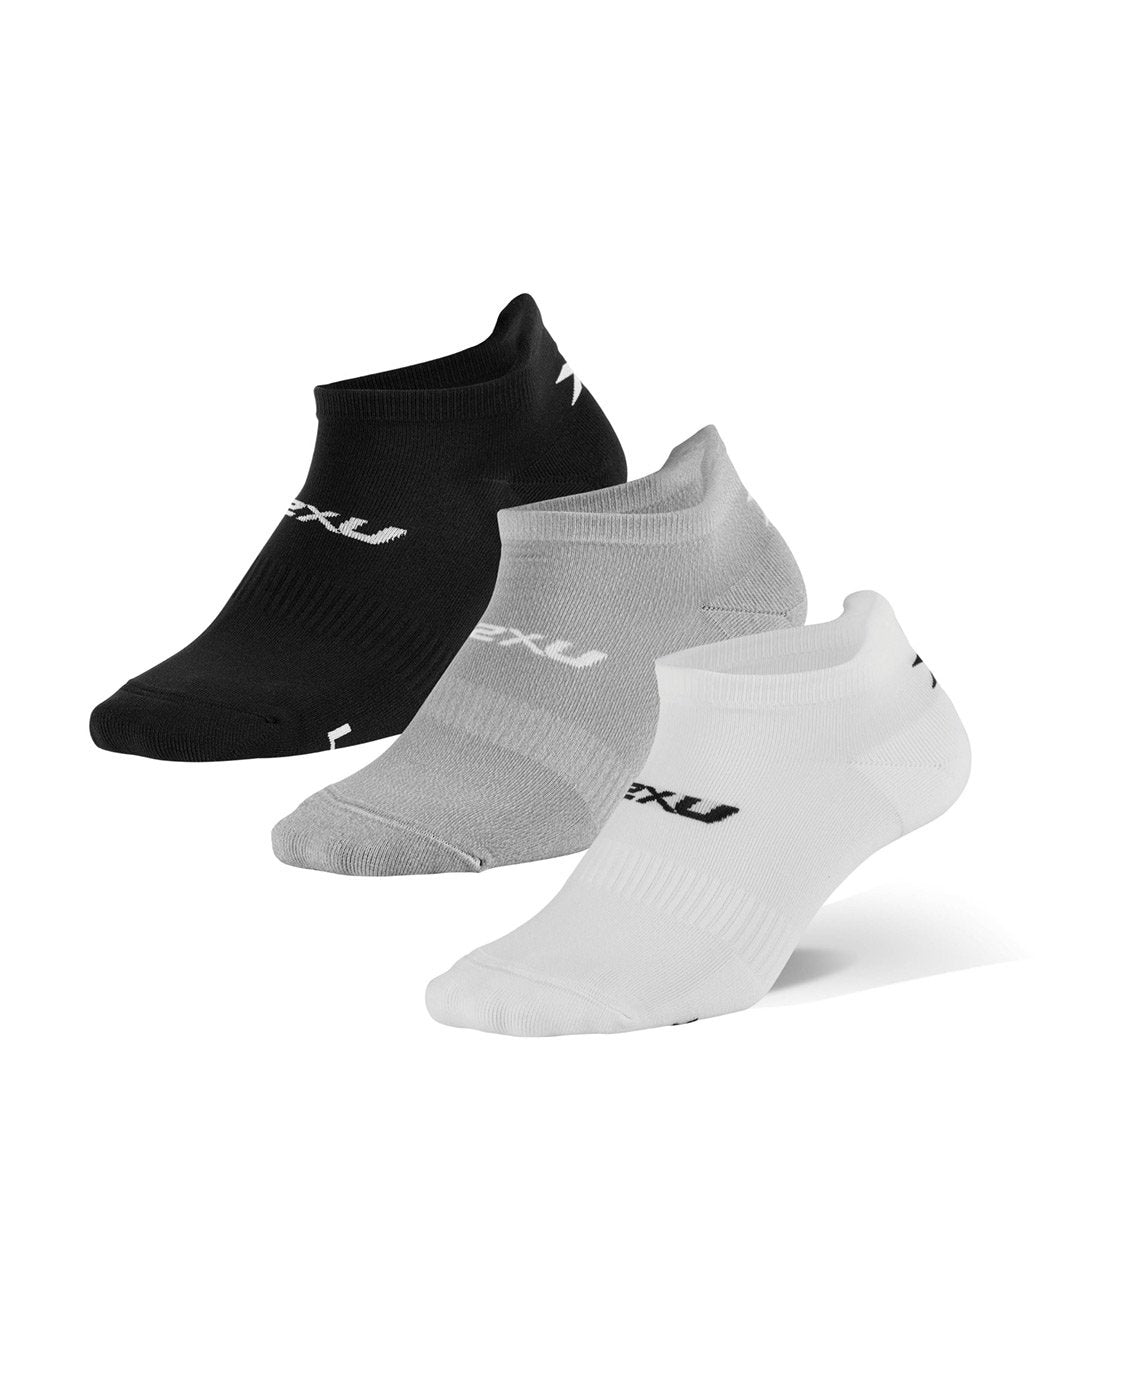 2XU Ankle Sock 3 Pack Unisex Three/Colour